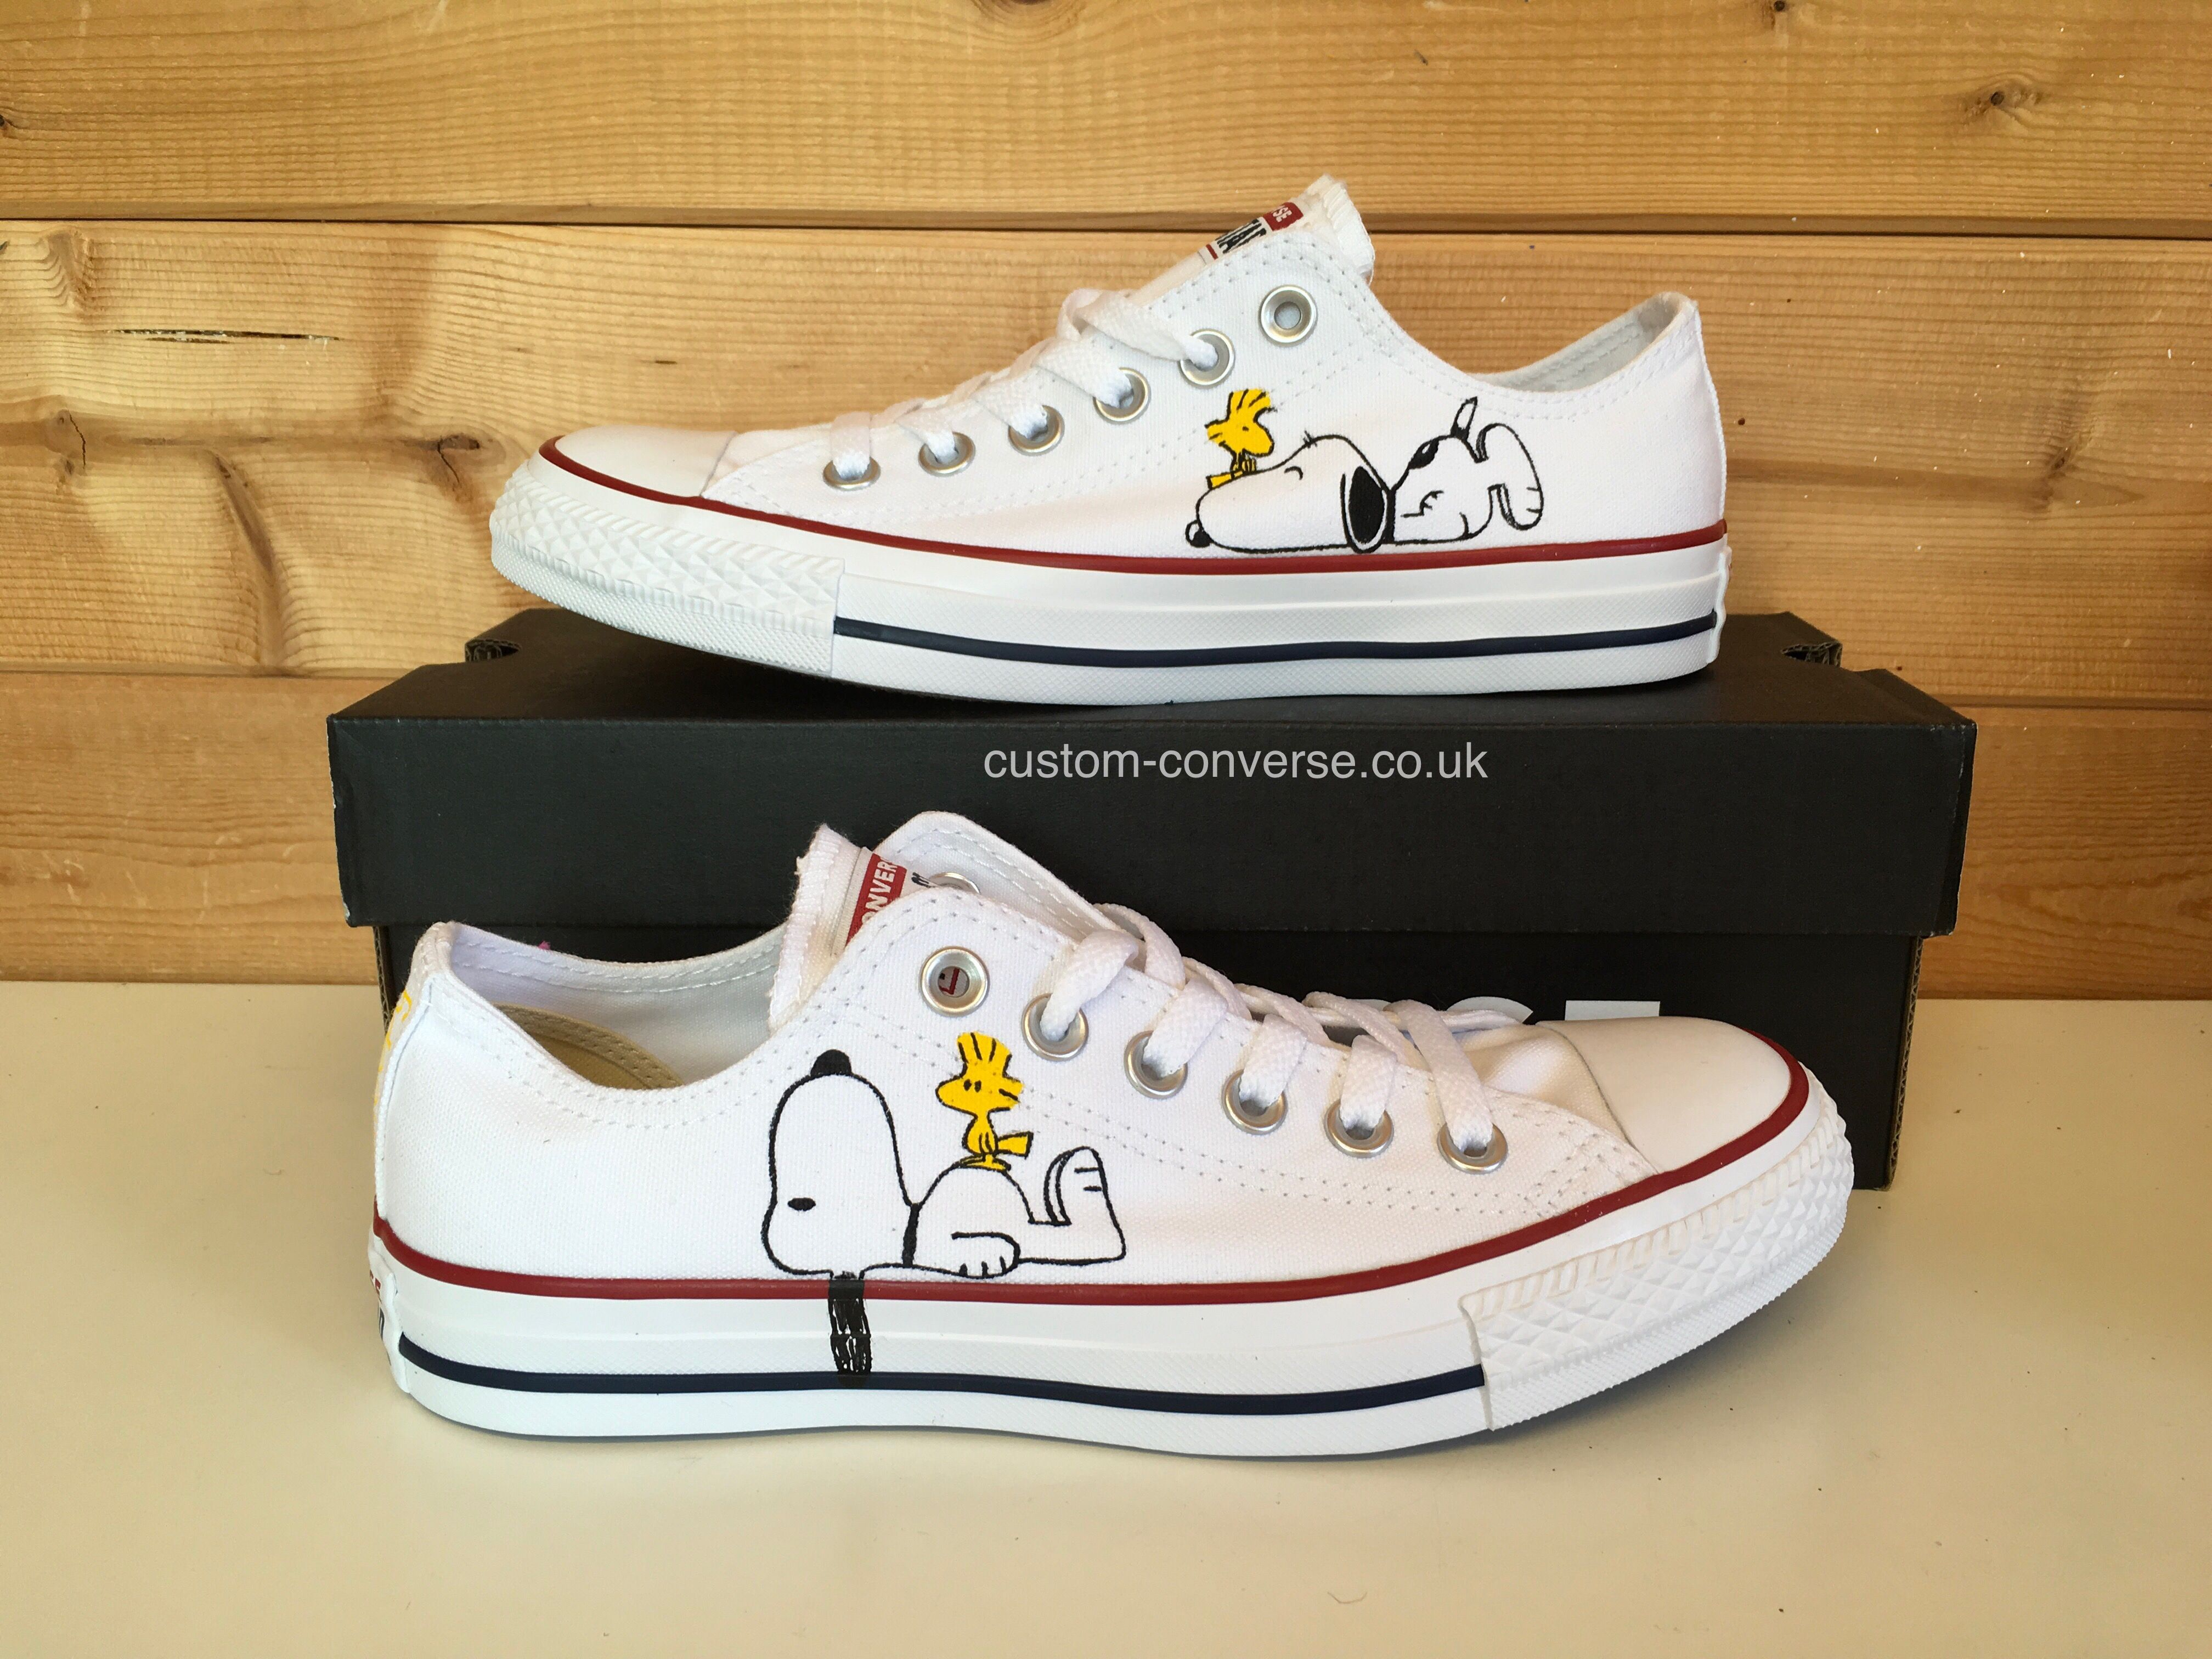 Snoopy Low Top Converse | Snoopy shoes, Painted shoes